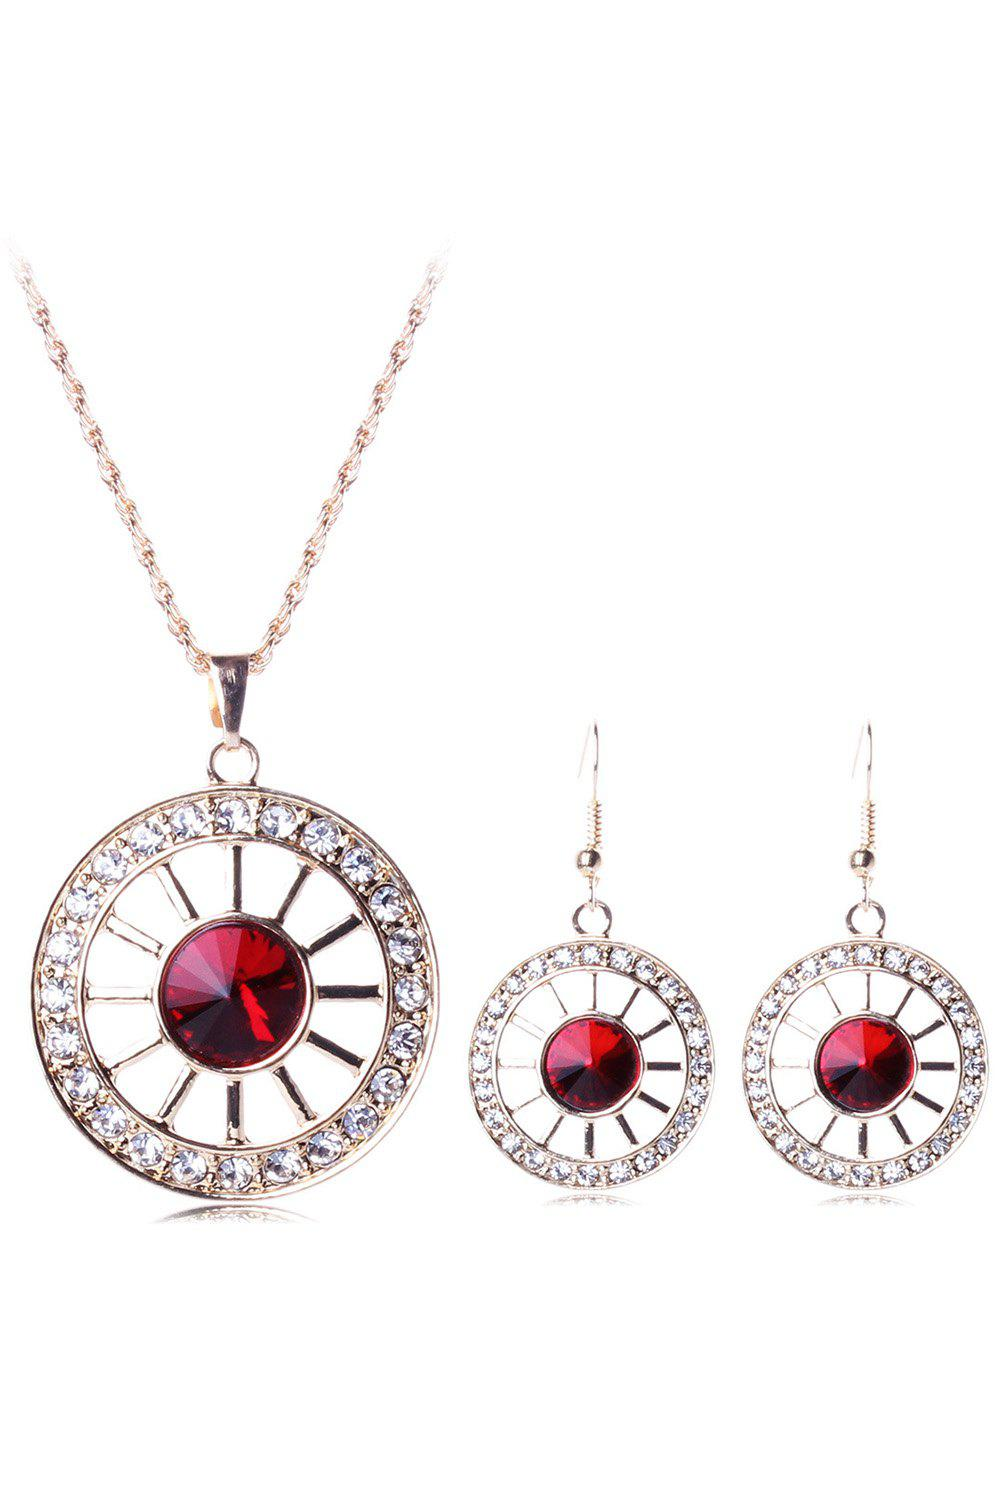 Chic Rhinestone Wheel Necklace and Earrings For Women